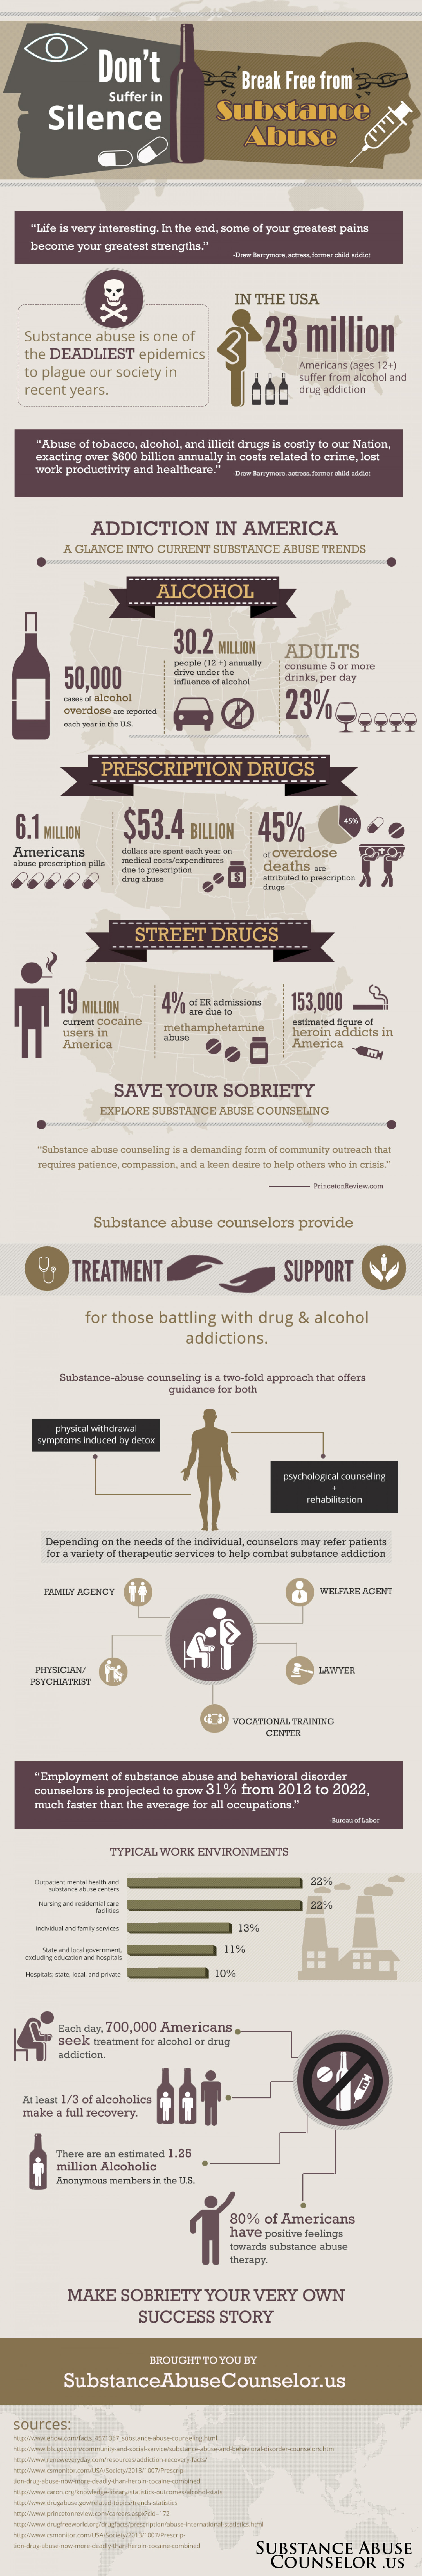 Don't Suffer in Silence, Break Free from Substance Abuse Infographic